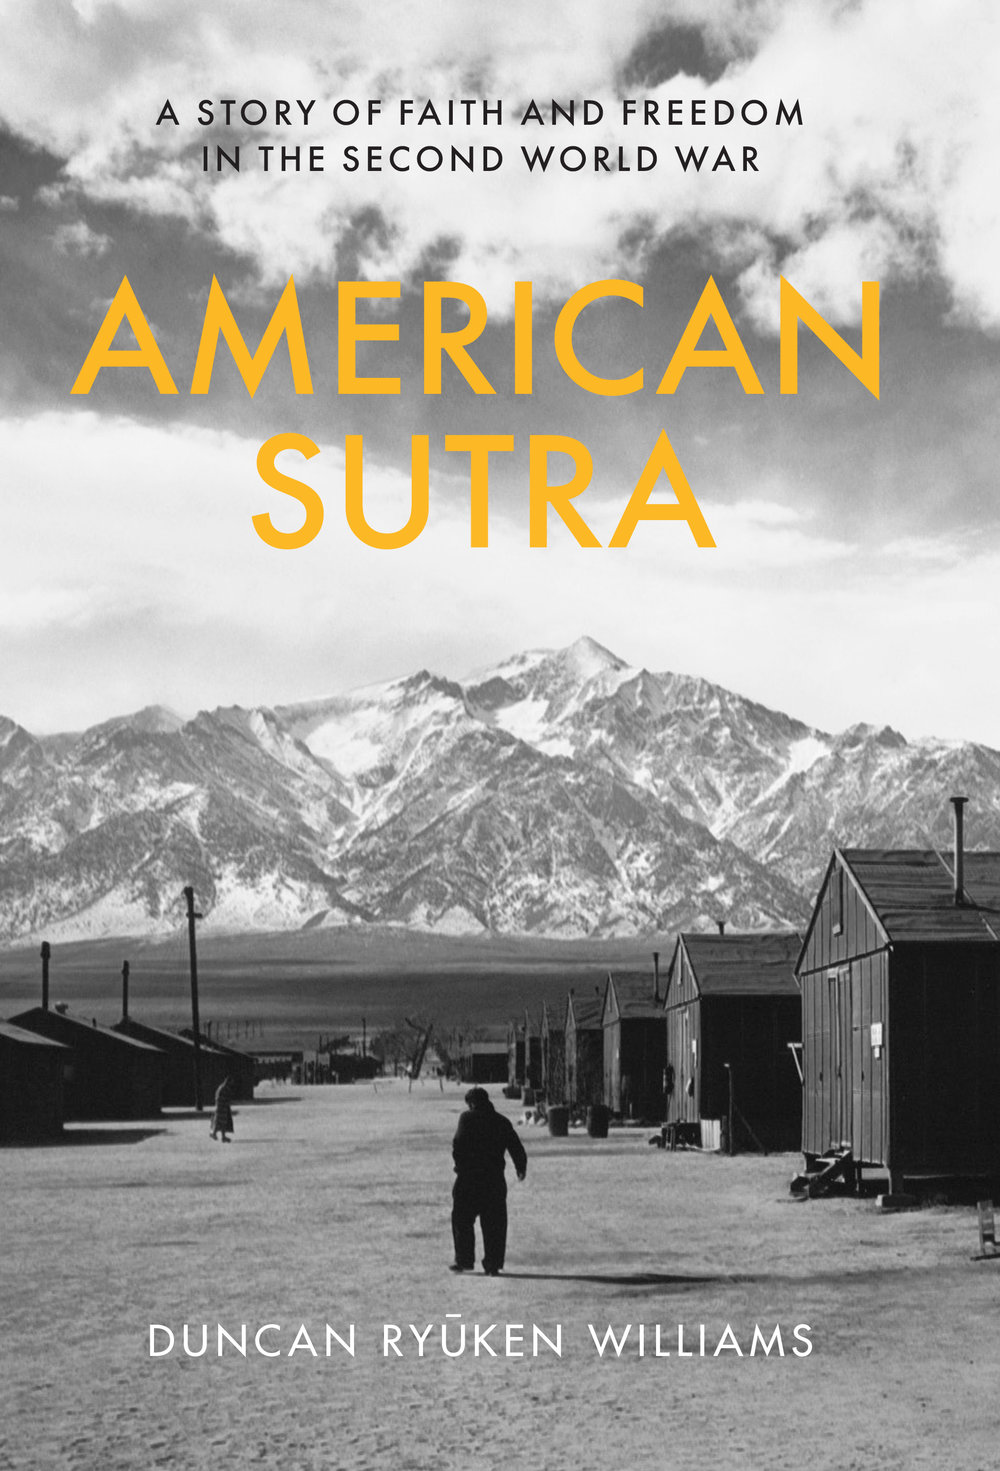 AmericanSutra-Cover-1948x2865.jpg